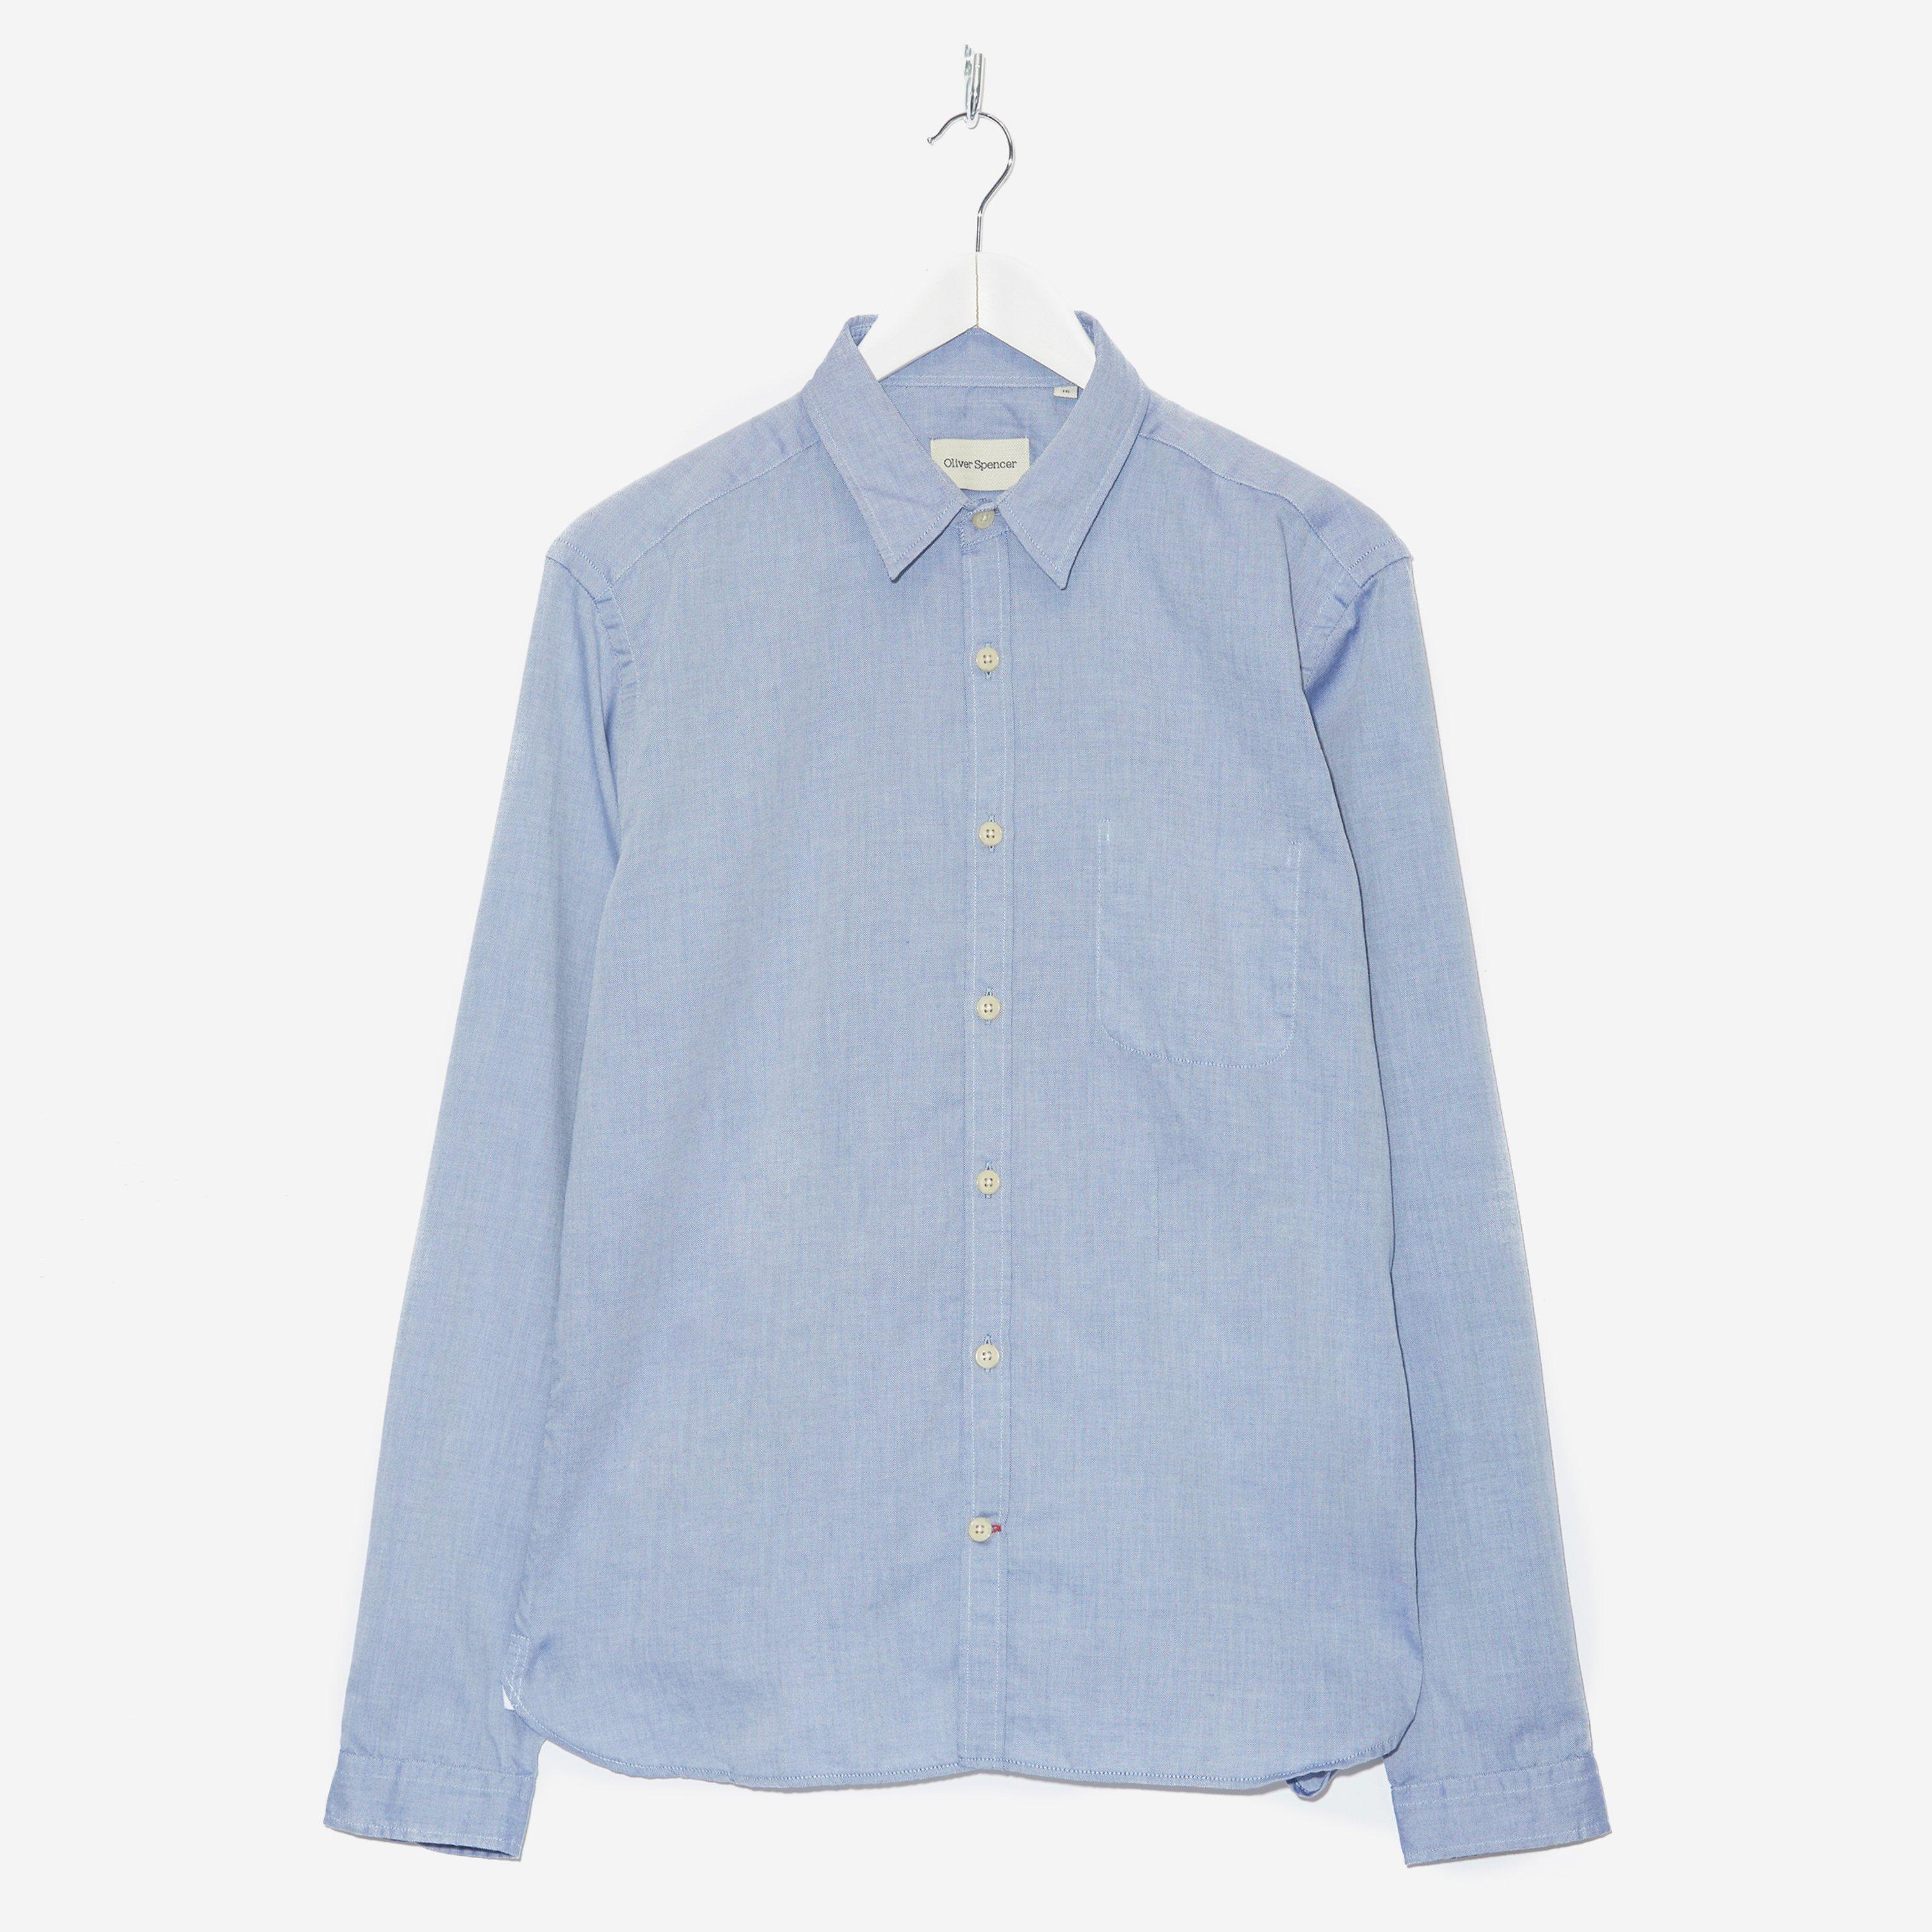 Oliver Spencer Astley New York Special Shirt